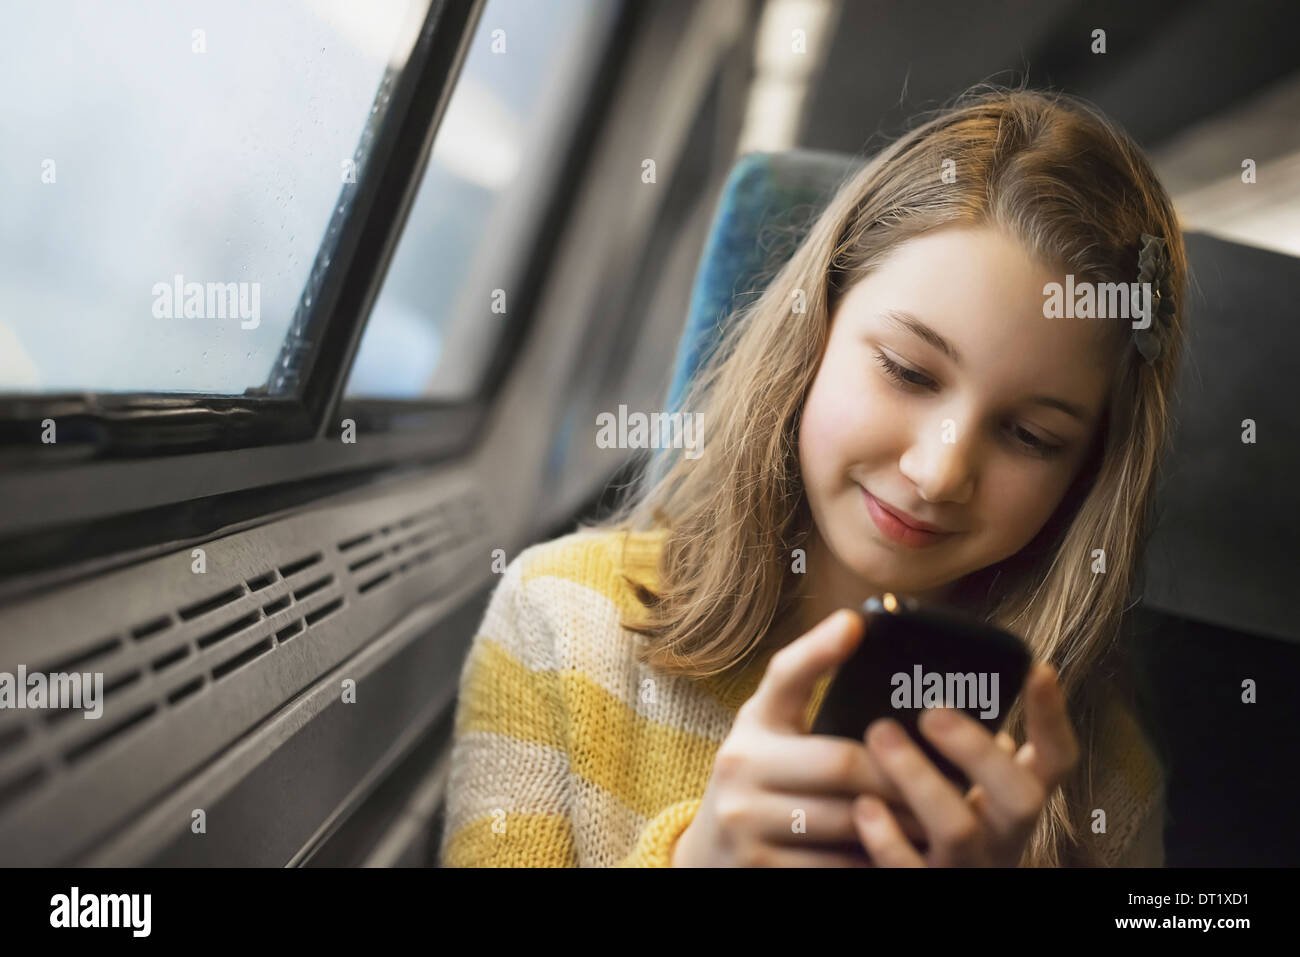 A young girl with long blonde hair sitting by a window on a train using her mobile phone texting and sending messages - Stock Image